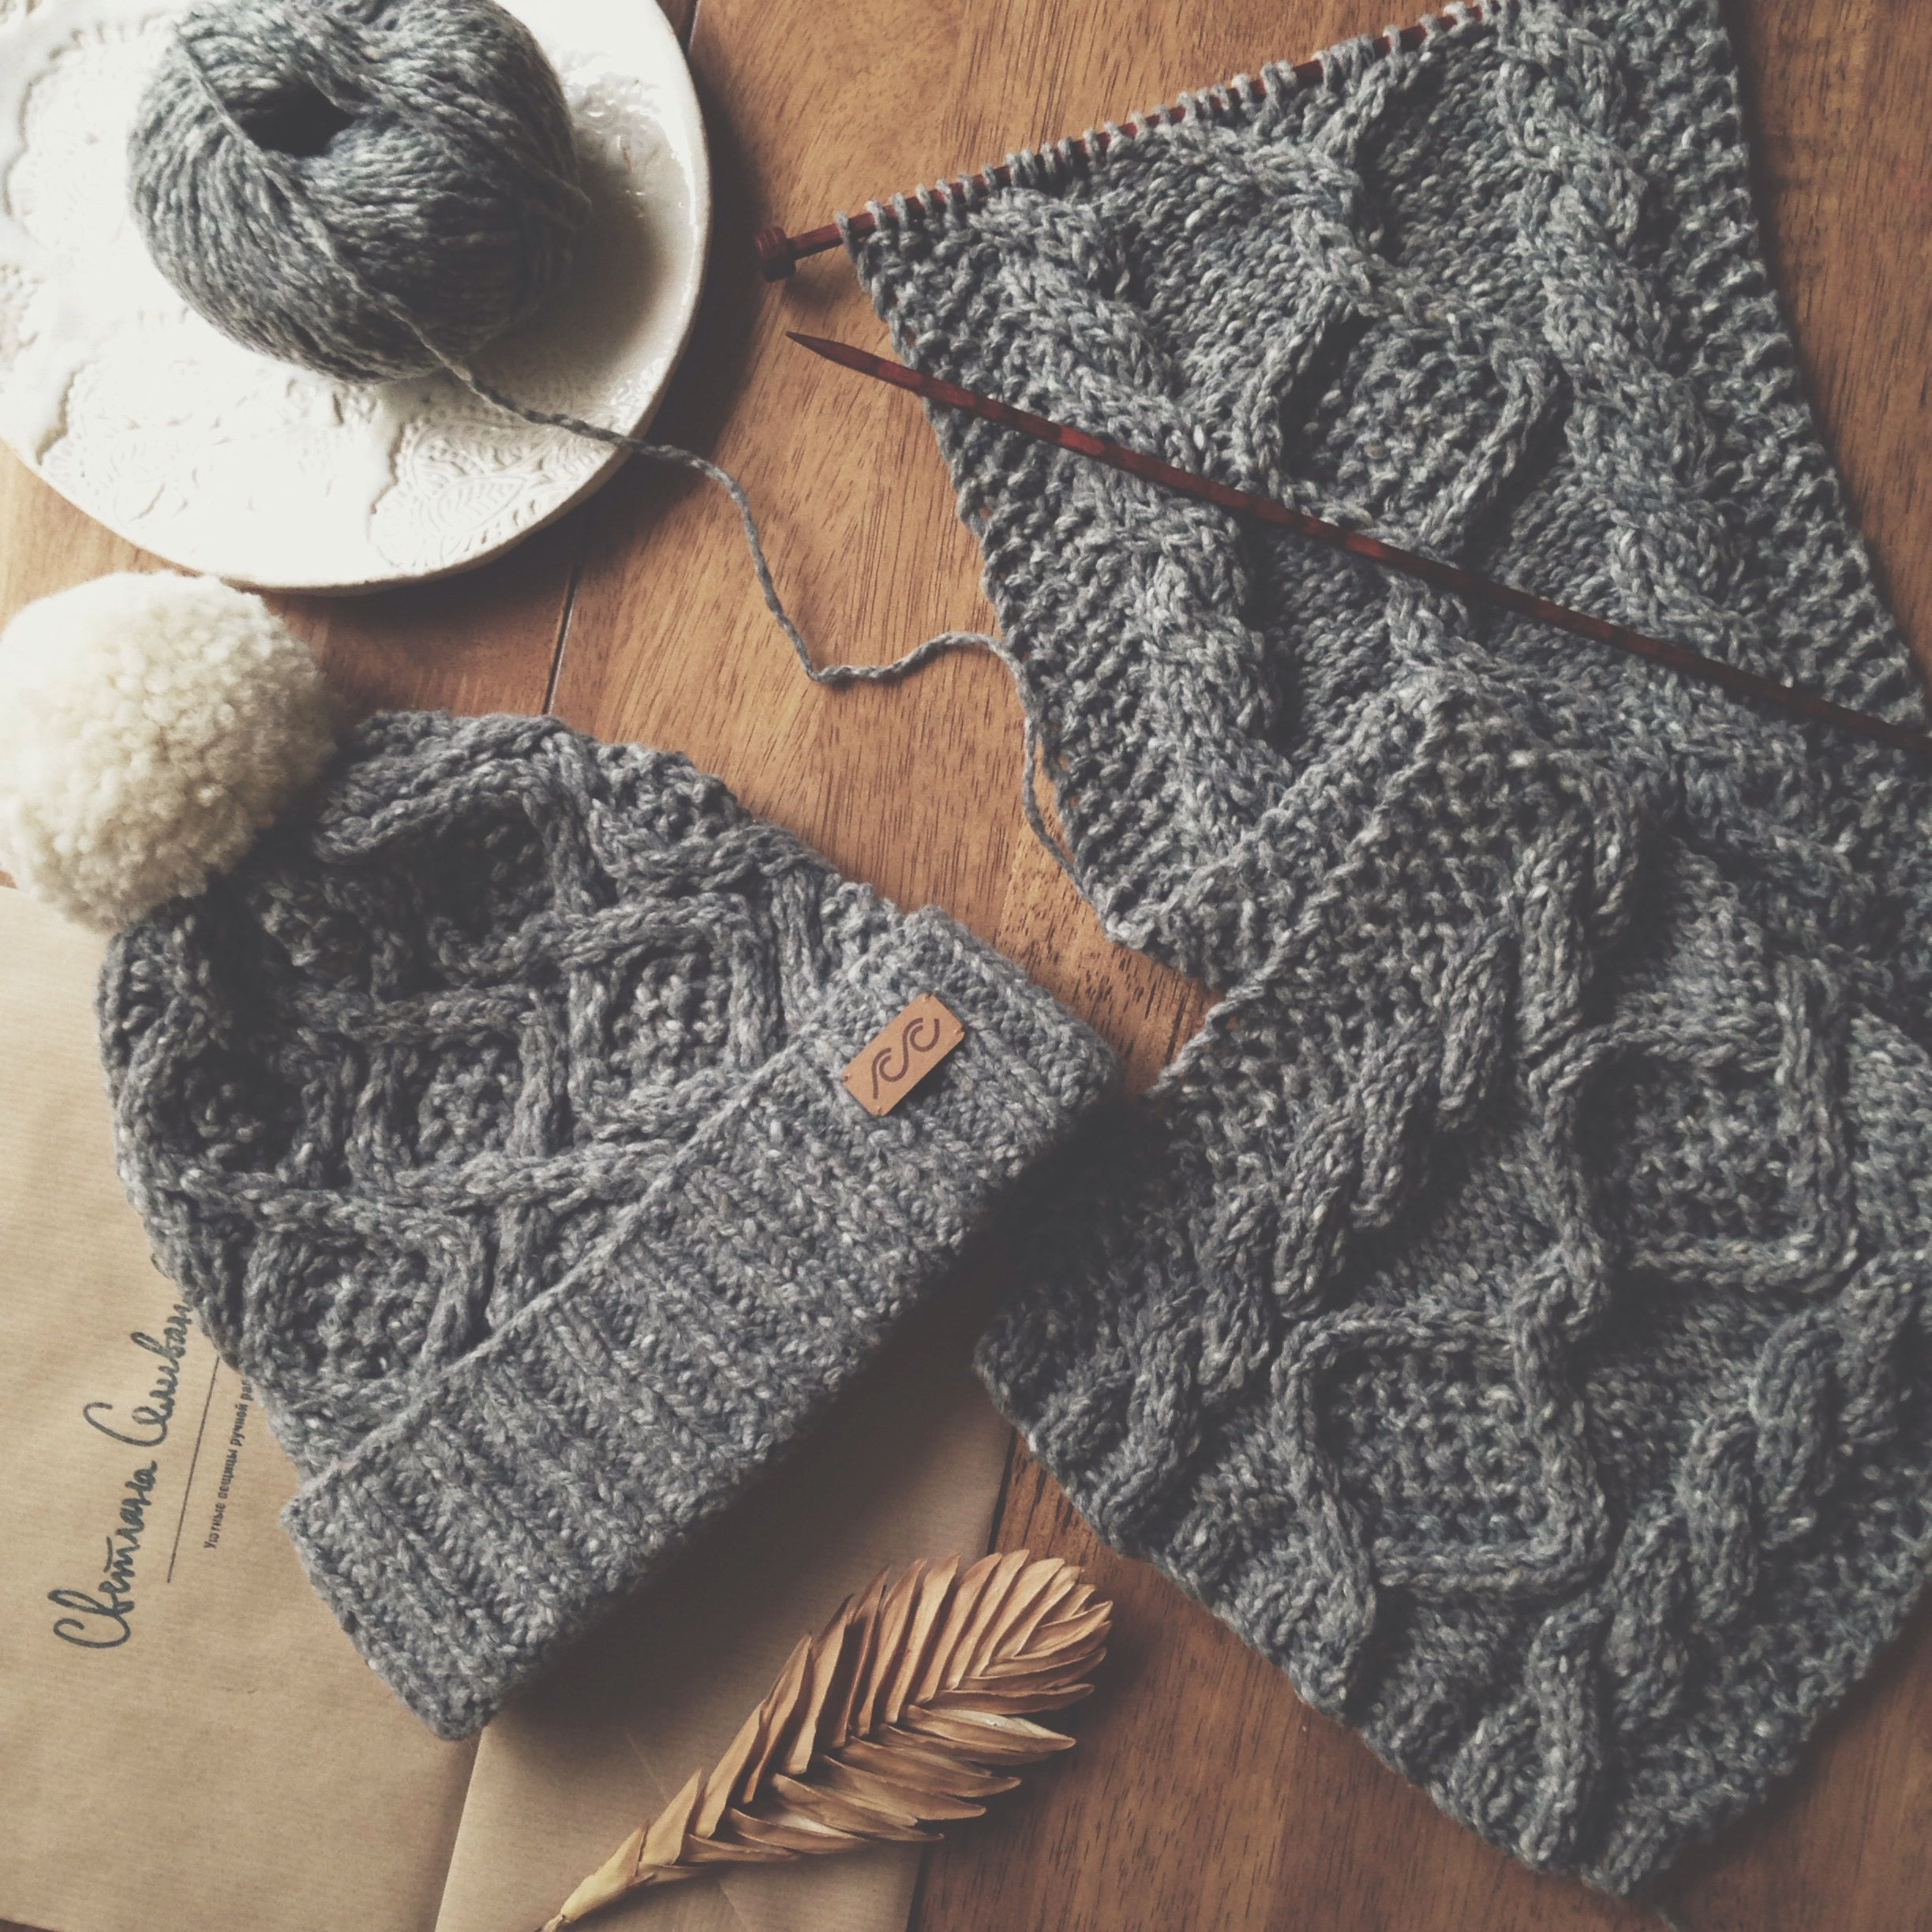 Tweed knitted hat and scarf | My handmade | Pinterest ...